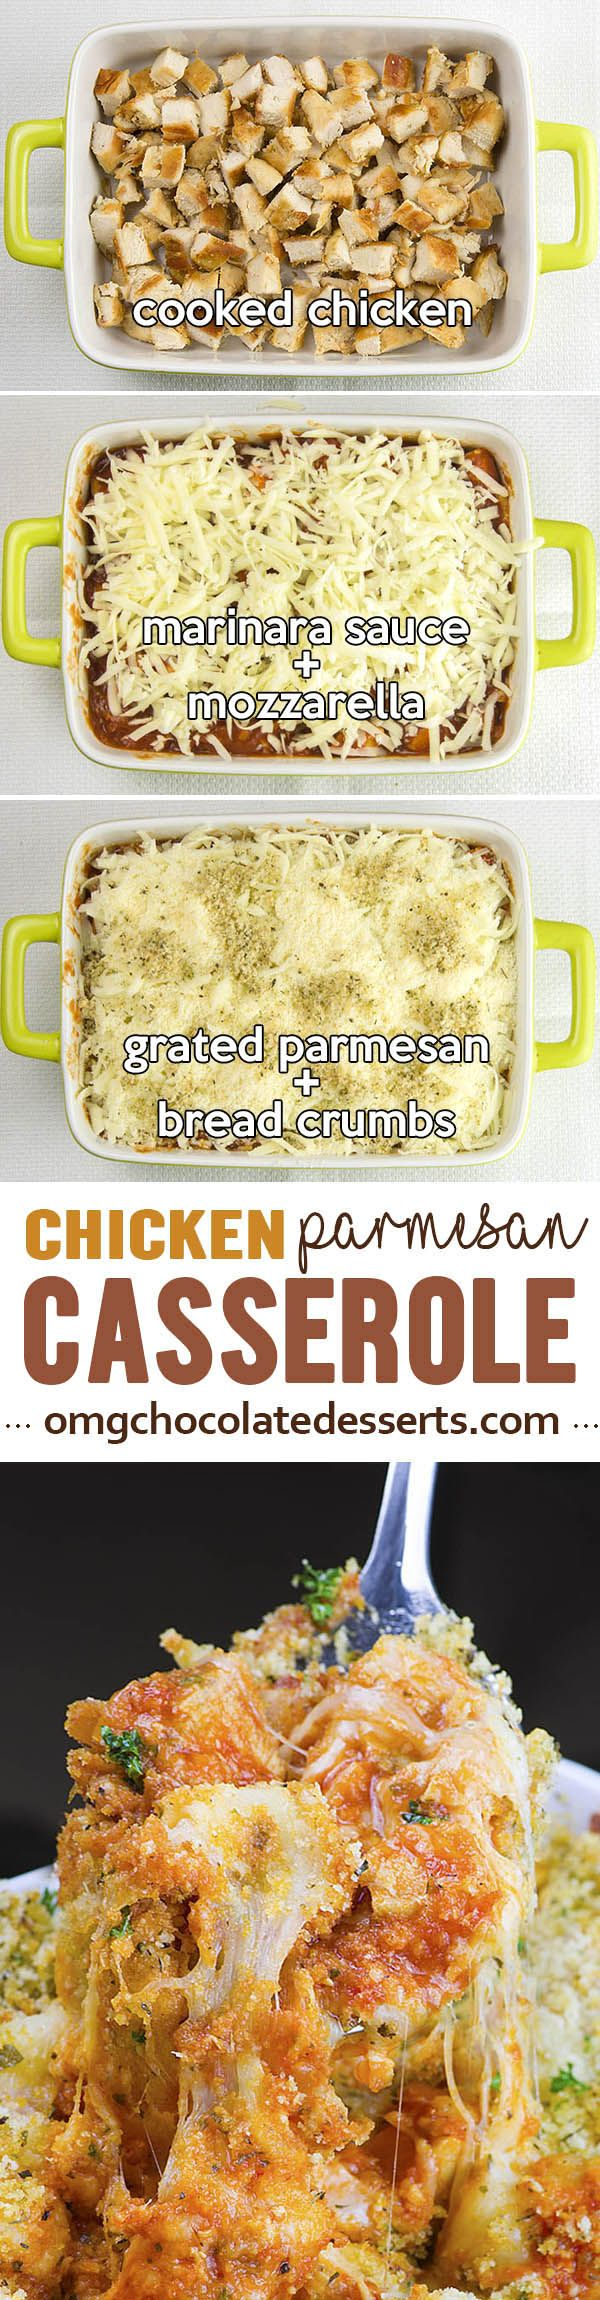 Chicken Parmesan Casserole served with pasta is quick, use gf bread crumbs or no breadcrumbs HEALTHY and EASY WEEKNIGHT DINNER for whole family. It's SIMPLE, FREEZER FRIENDLY RECIPE and great idea how to use up leftover chicken.